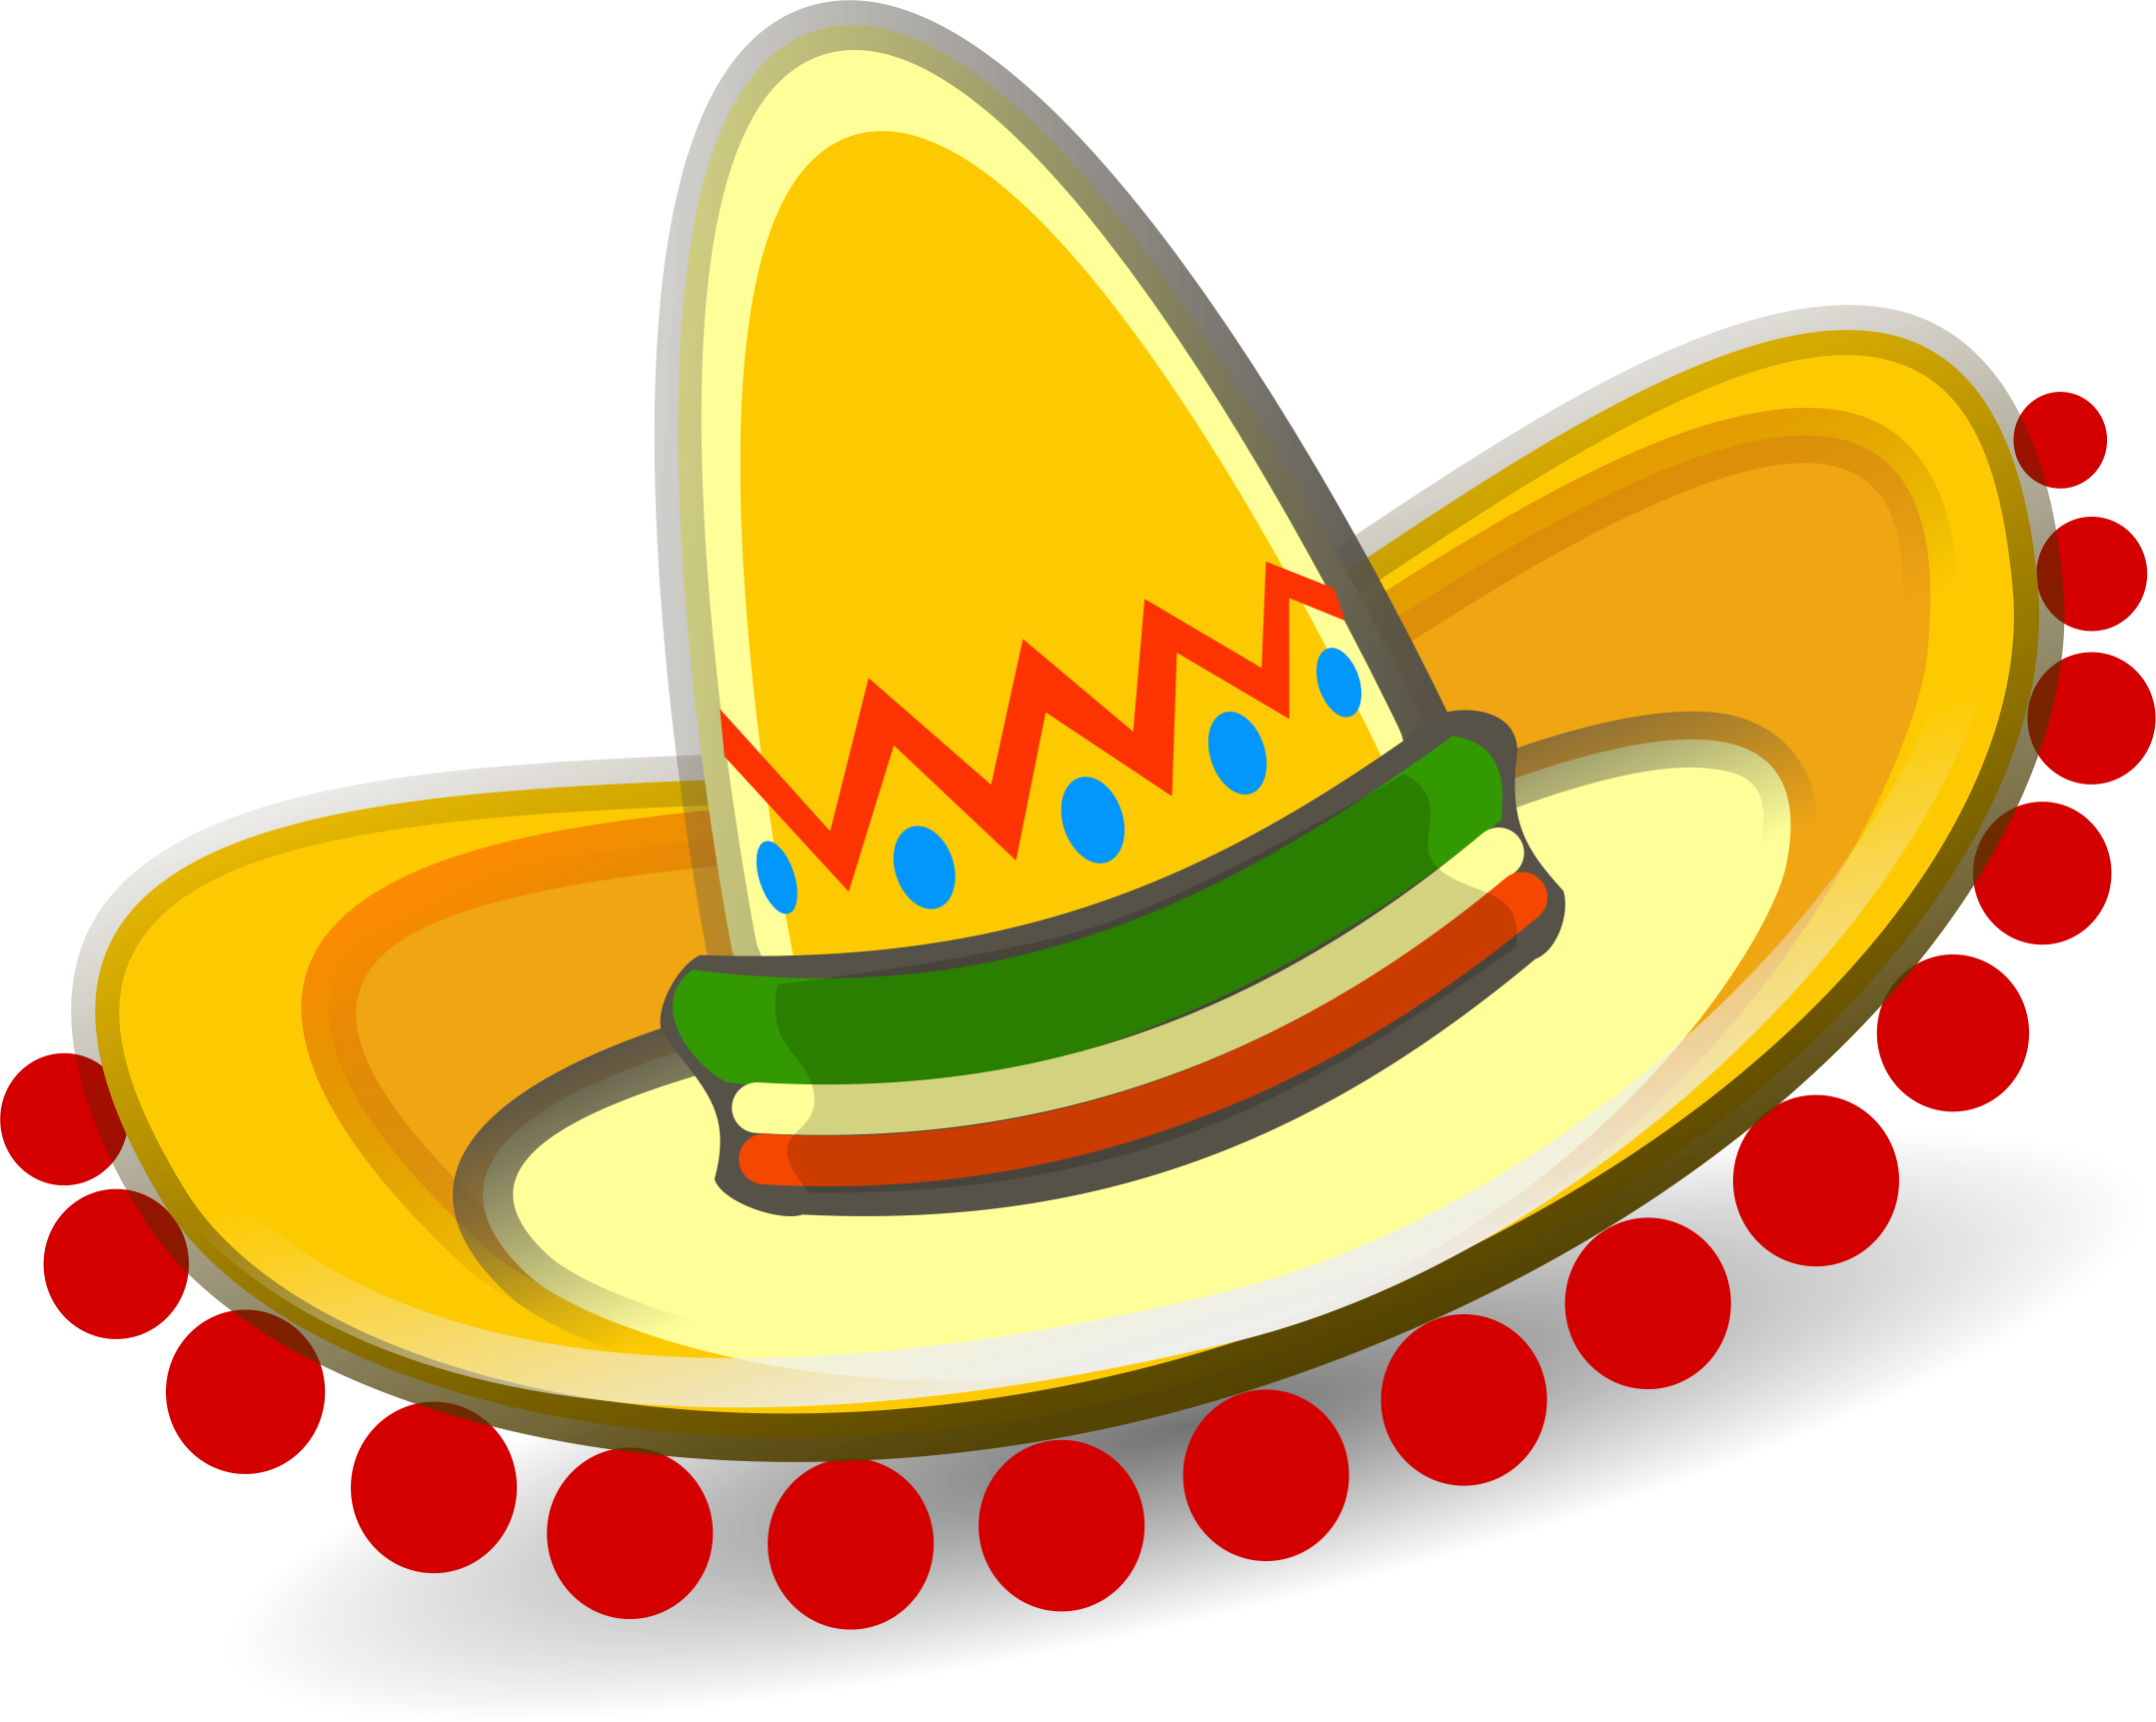 Cinco de mayo flower clipart png free Pin by Heather Satterfield on South of the Border Fiesta Party ... png free